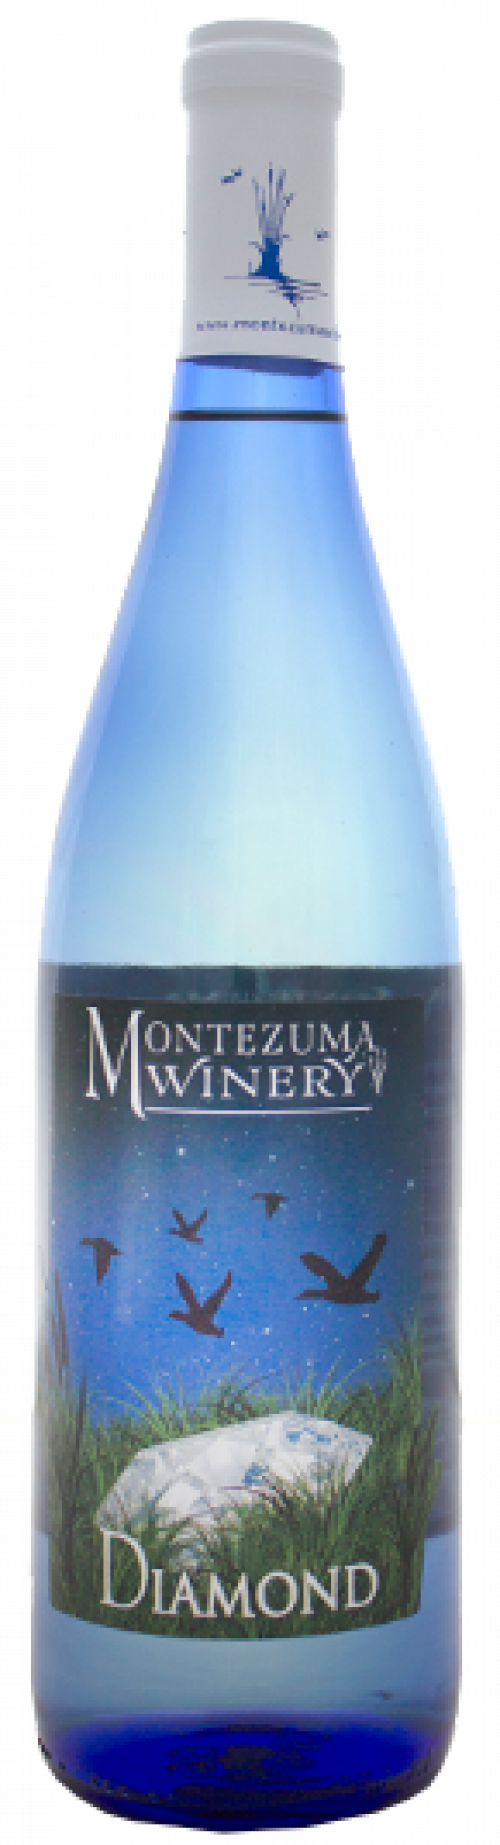 Montezuma Diamond 750ml NV